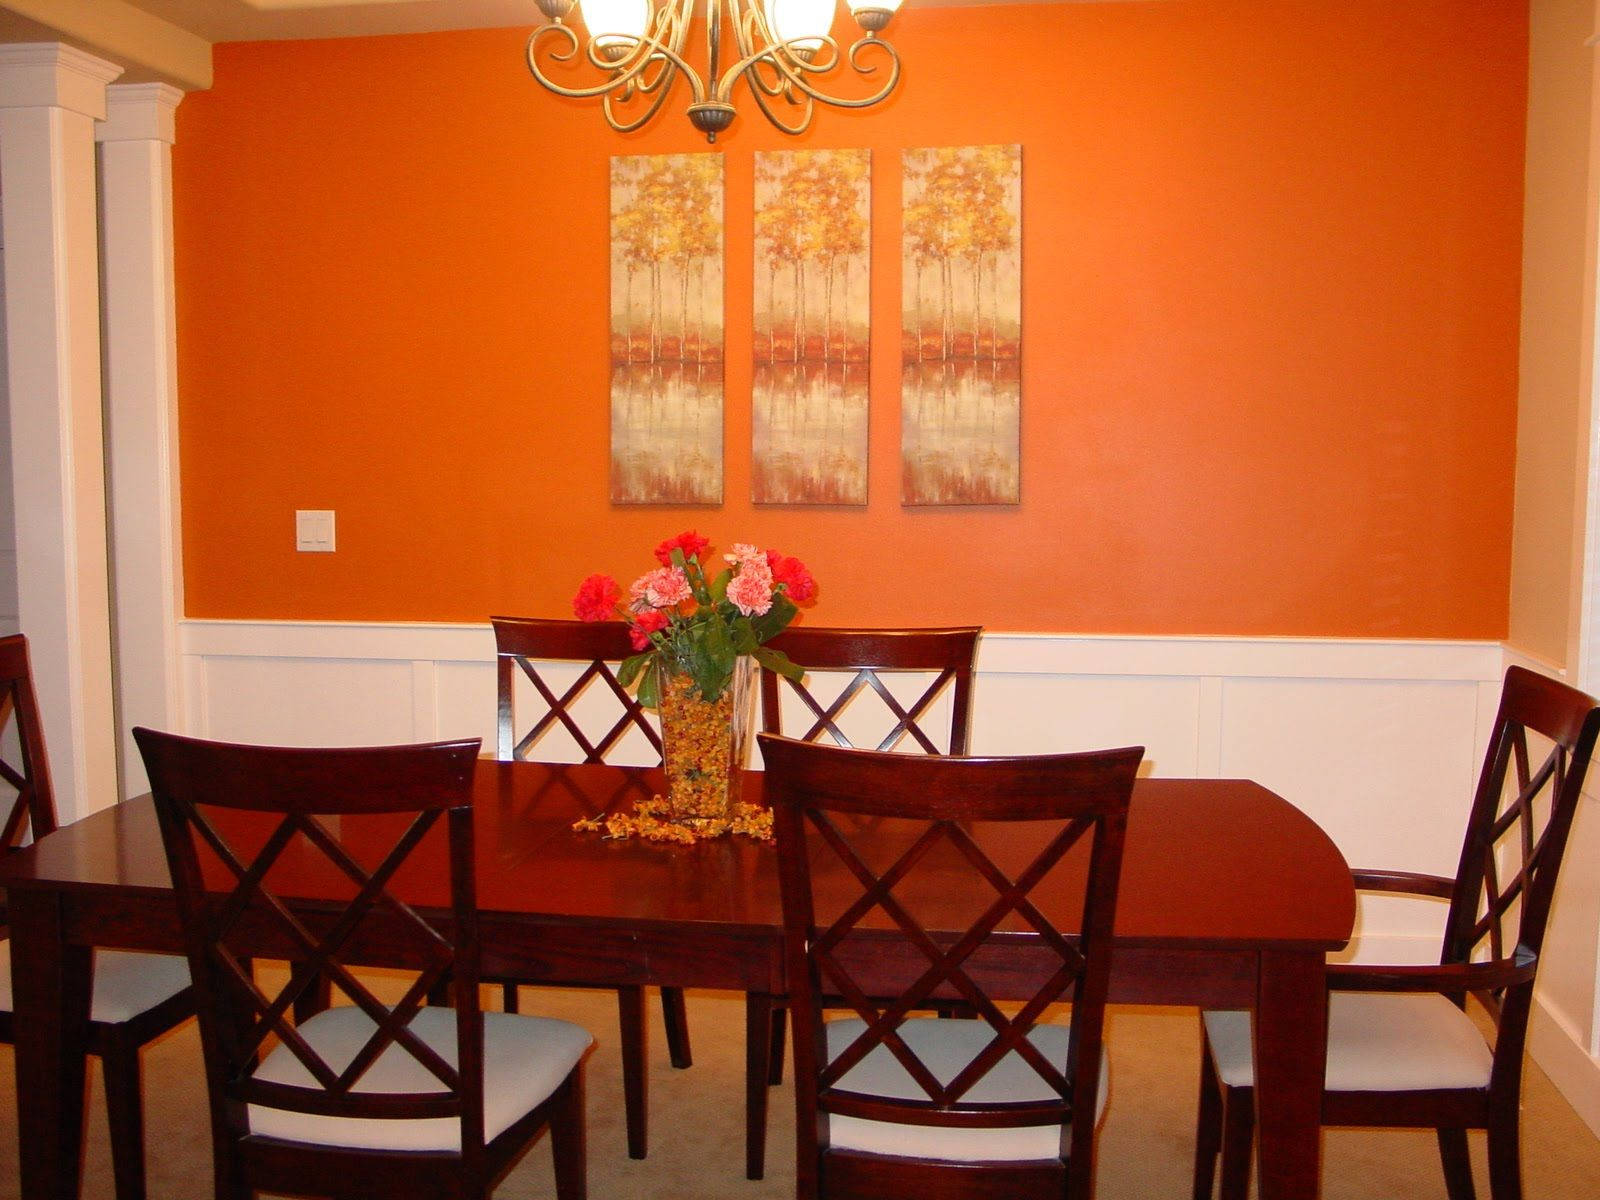 Color Ideas For Dining Room Walls Impressive Dining Room Paint Ideas With Accent Wall Odqeaih New Home Rule Design Ideas